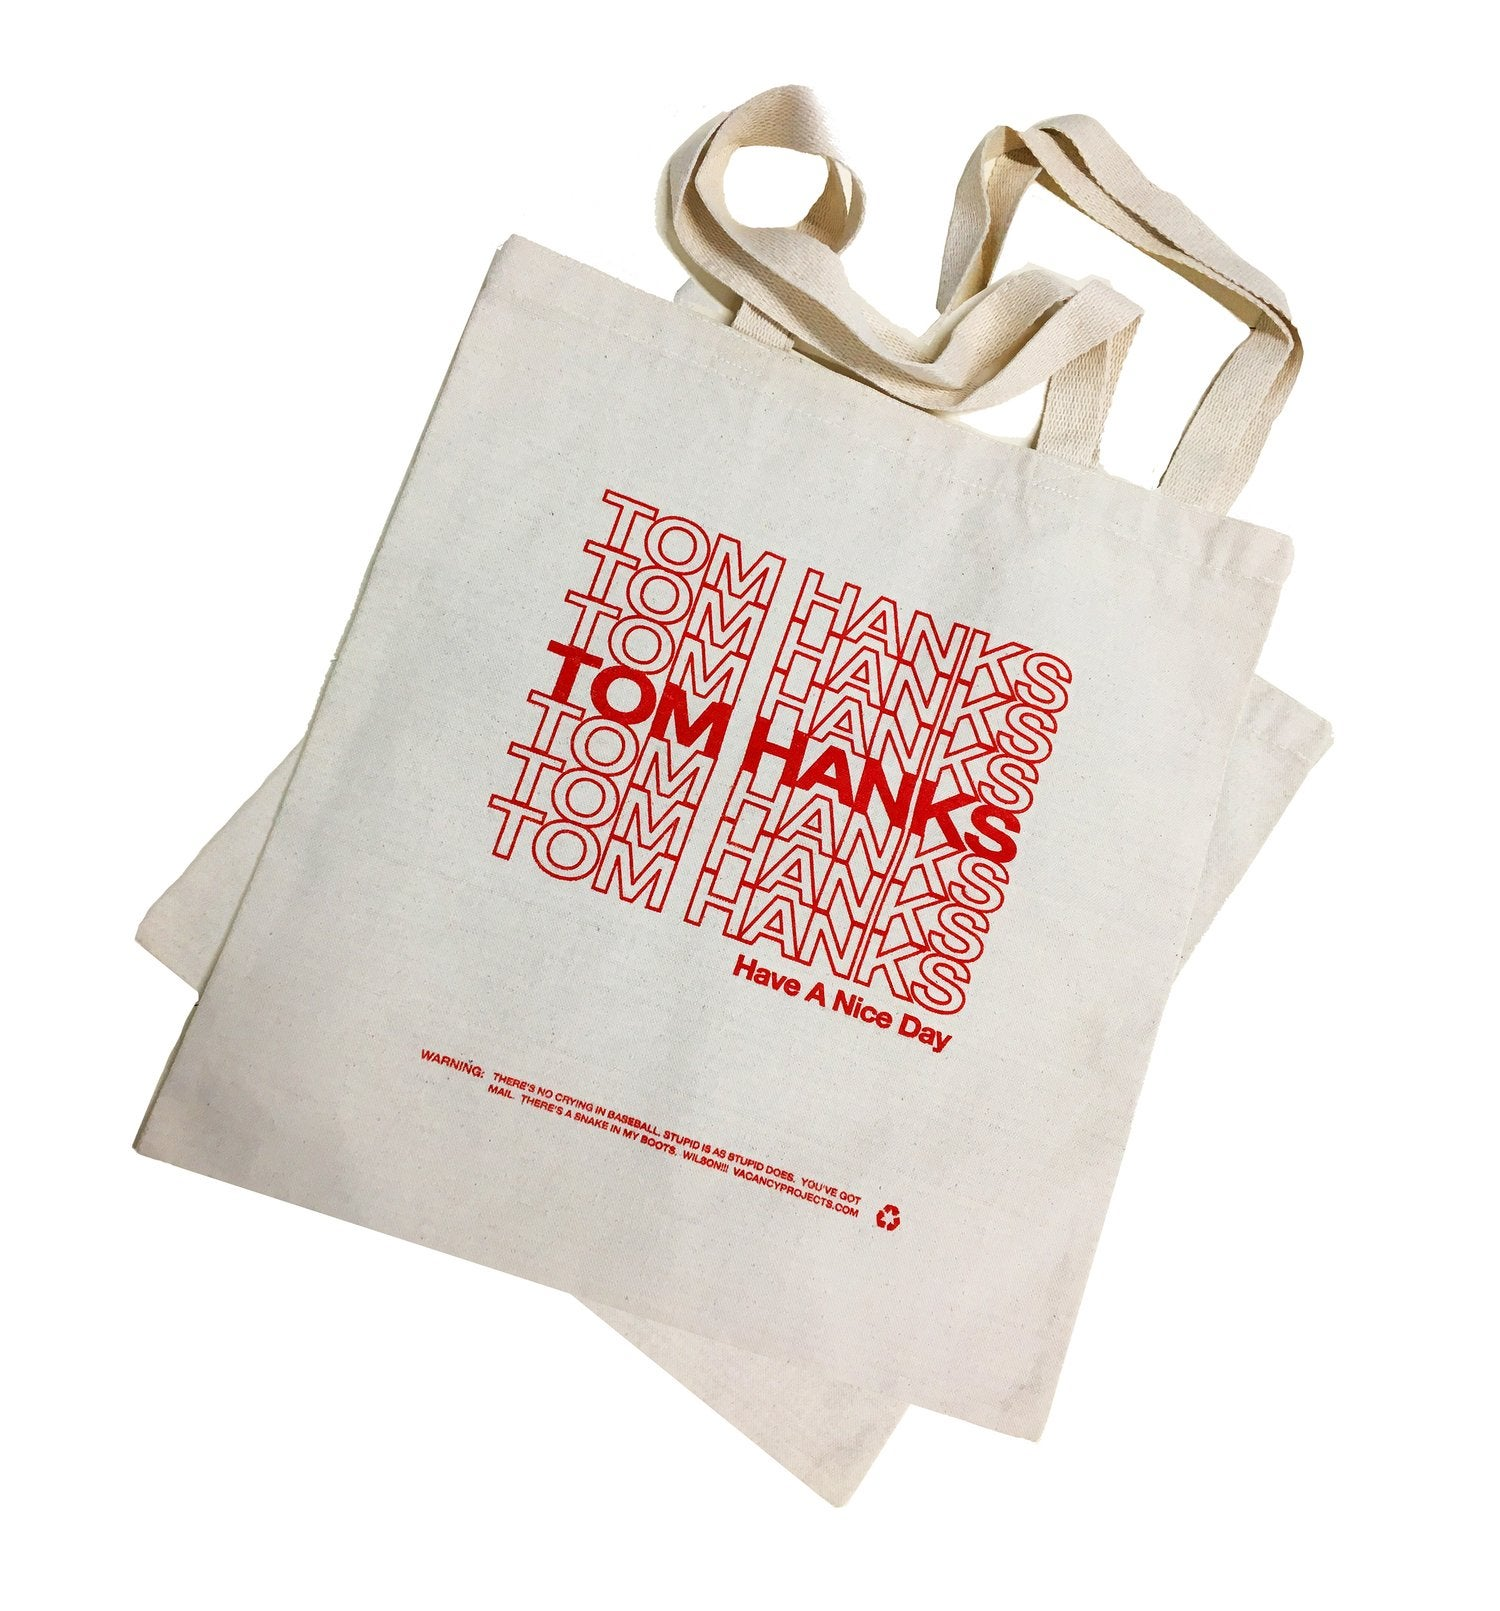 Image of The One with the Tom Hanks Tote Bag